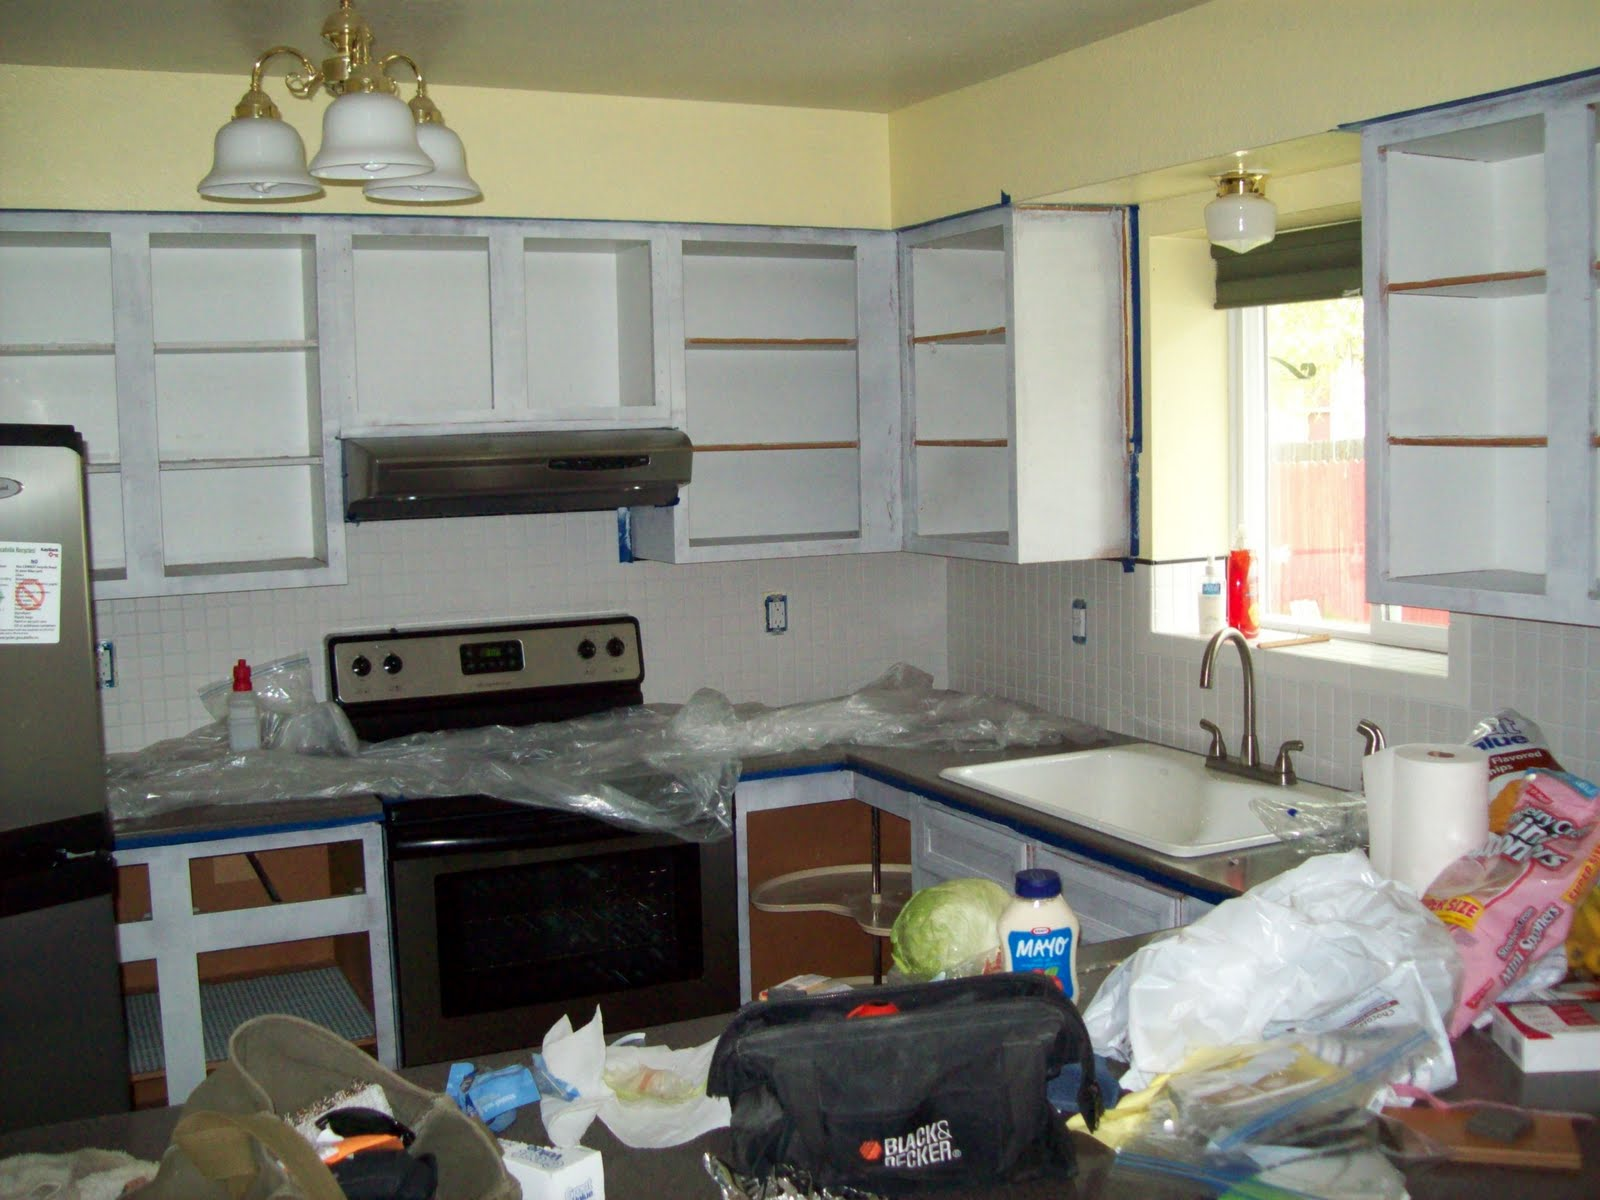 how to paint your kitchen cabinets buy kitchen cabinet doors How To Paint Your Kitchen Cabinets